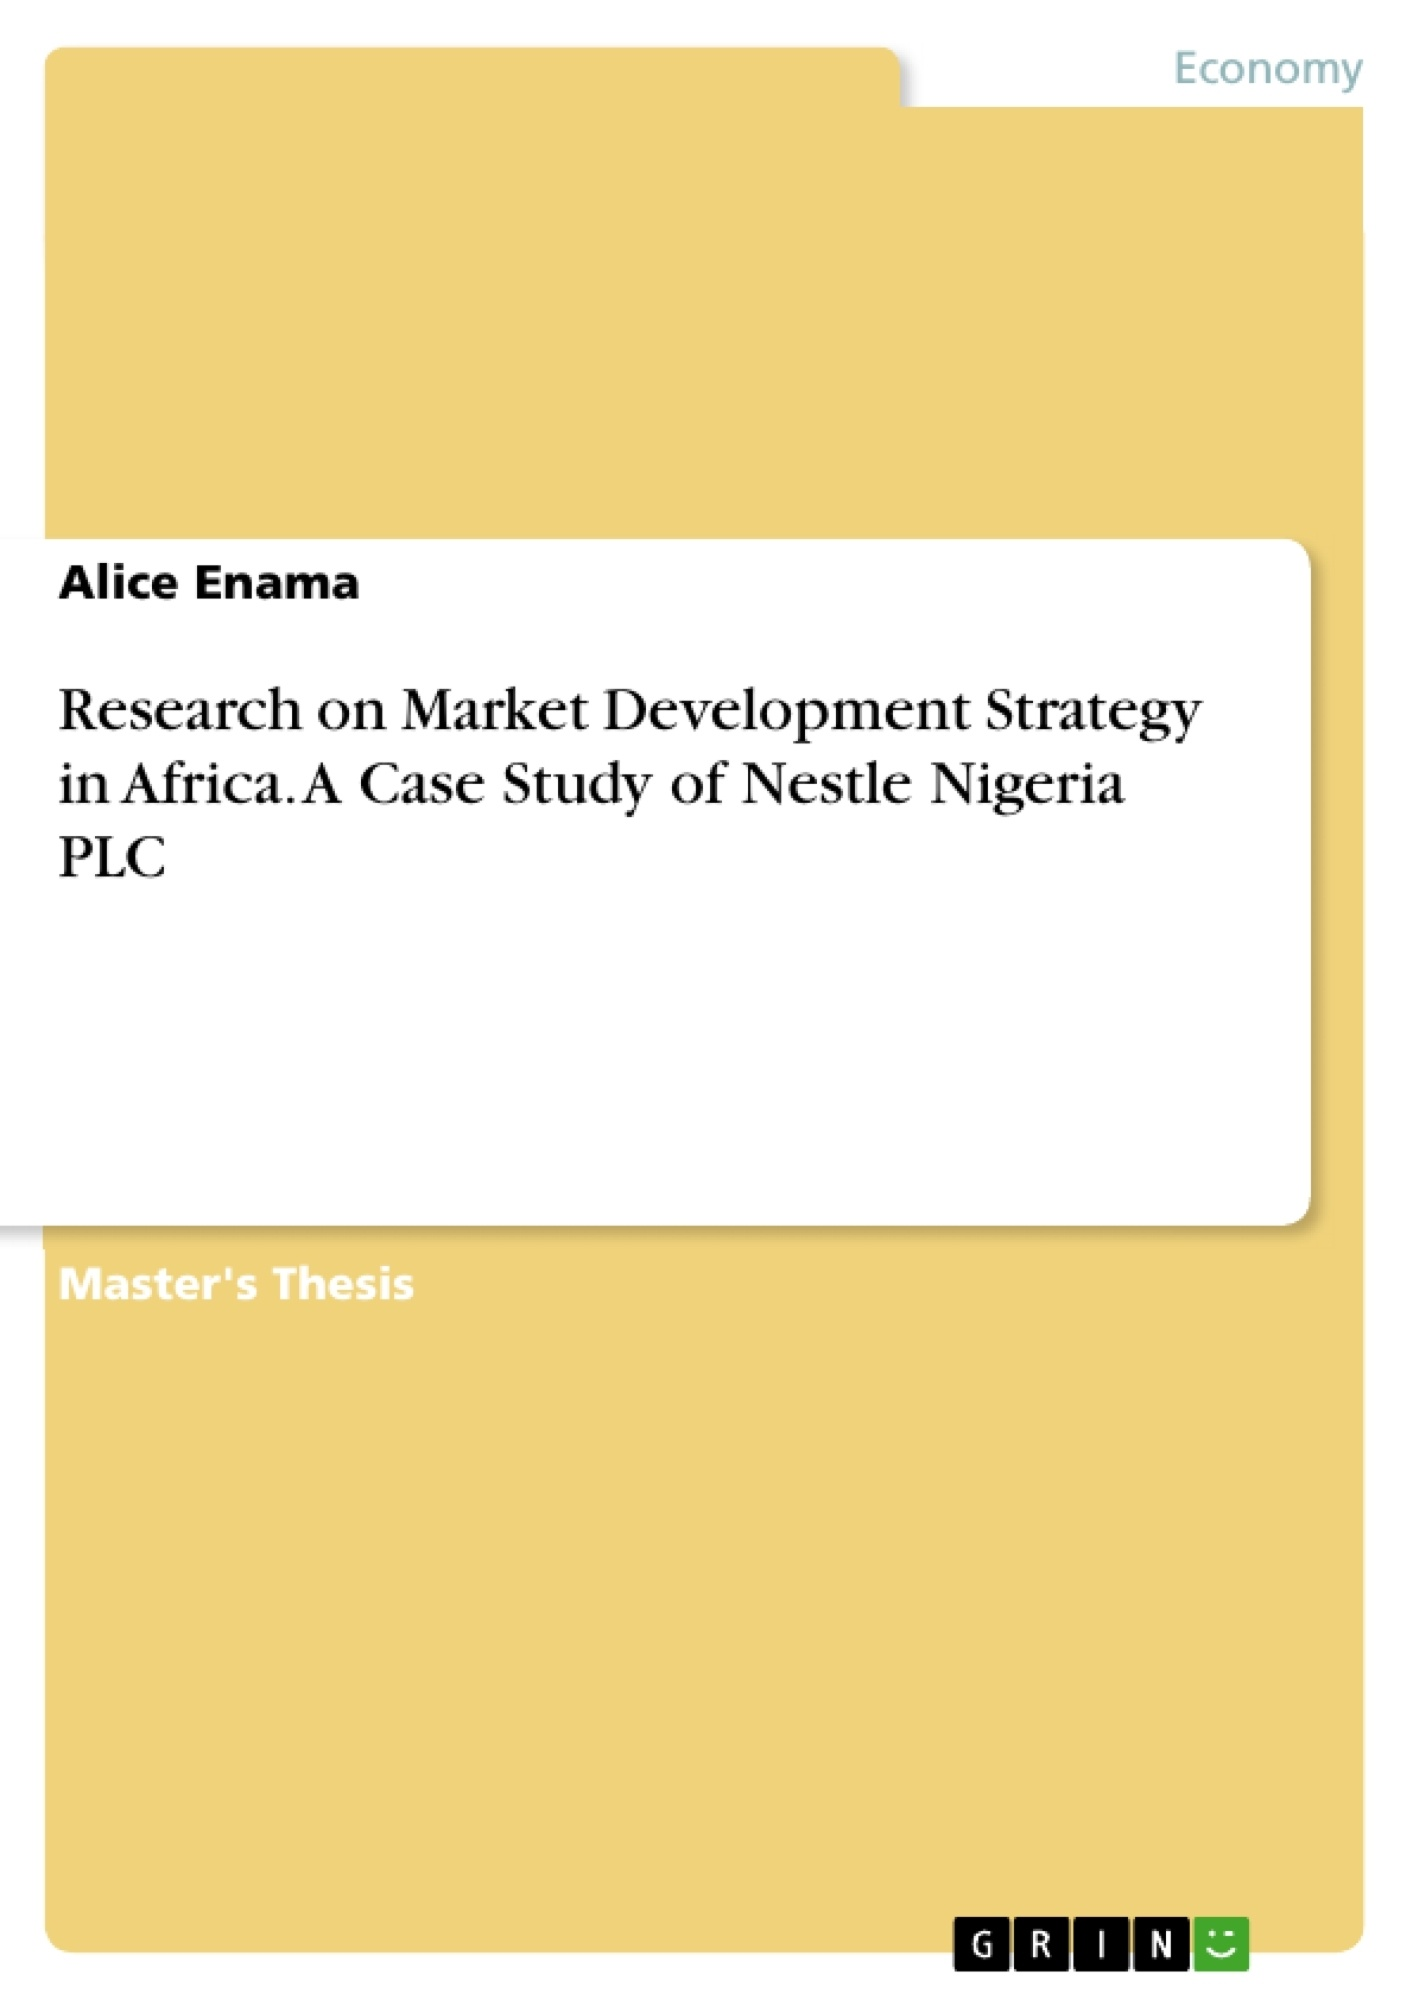 GRIN - Research on Market Development Strategy in Africa  A Case Study of  Nestle Nigeria PLC